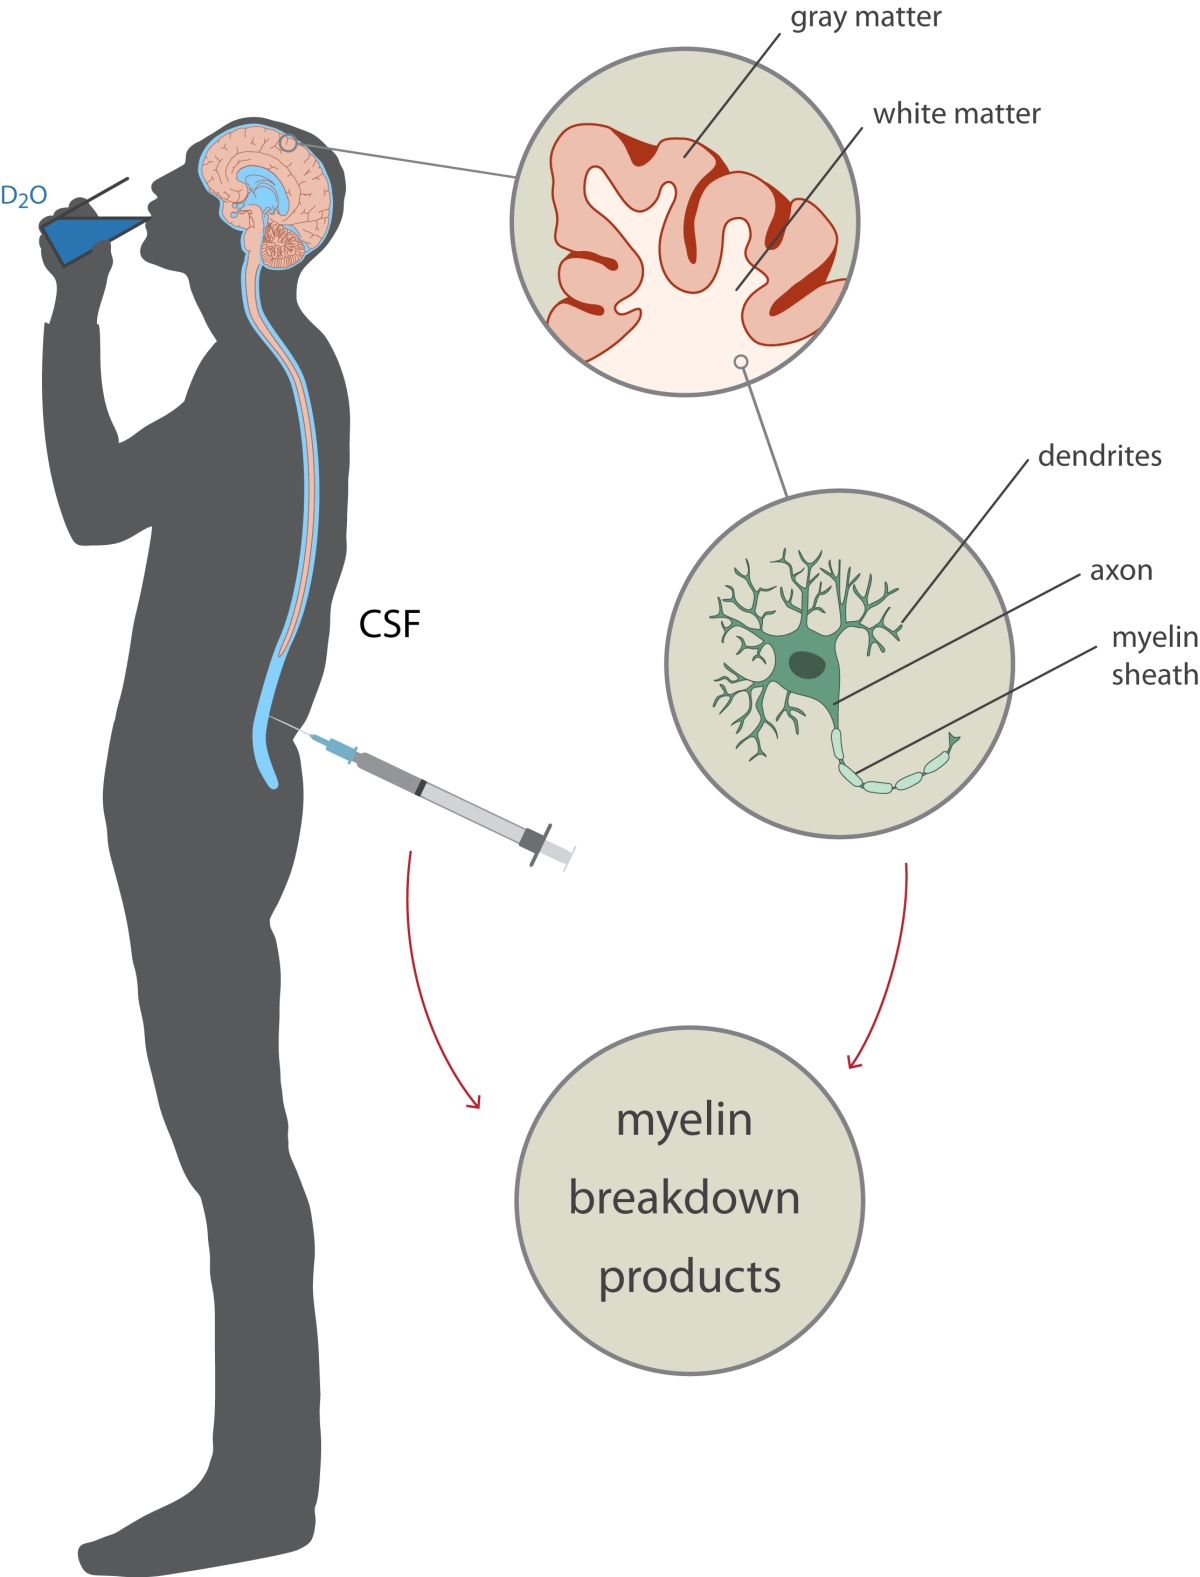 Figure_CHDR_Study_Setup_myelin_breakdown